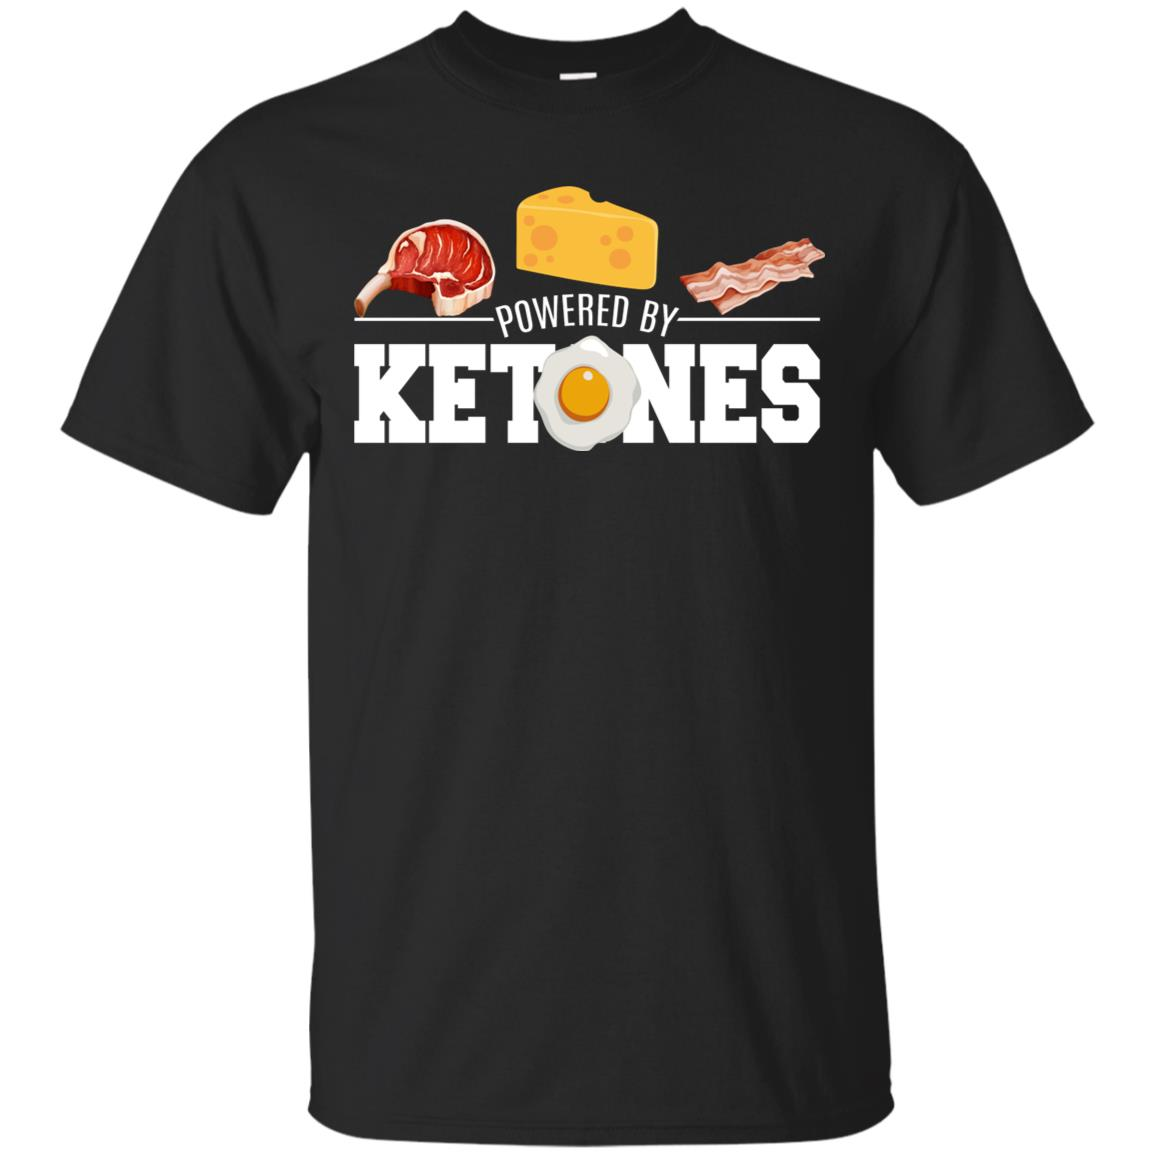 Powered By Ketones Keto Dieting Gifts Motivation Unisex Short Sleeve